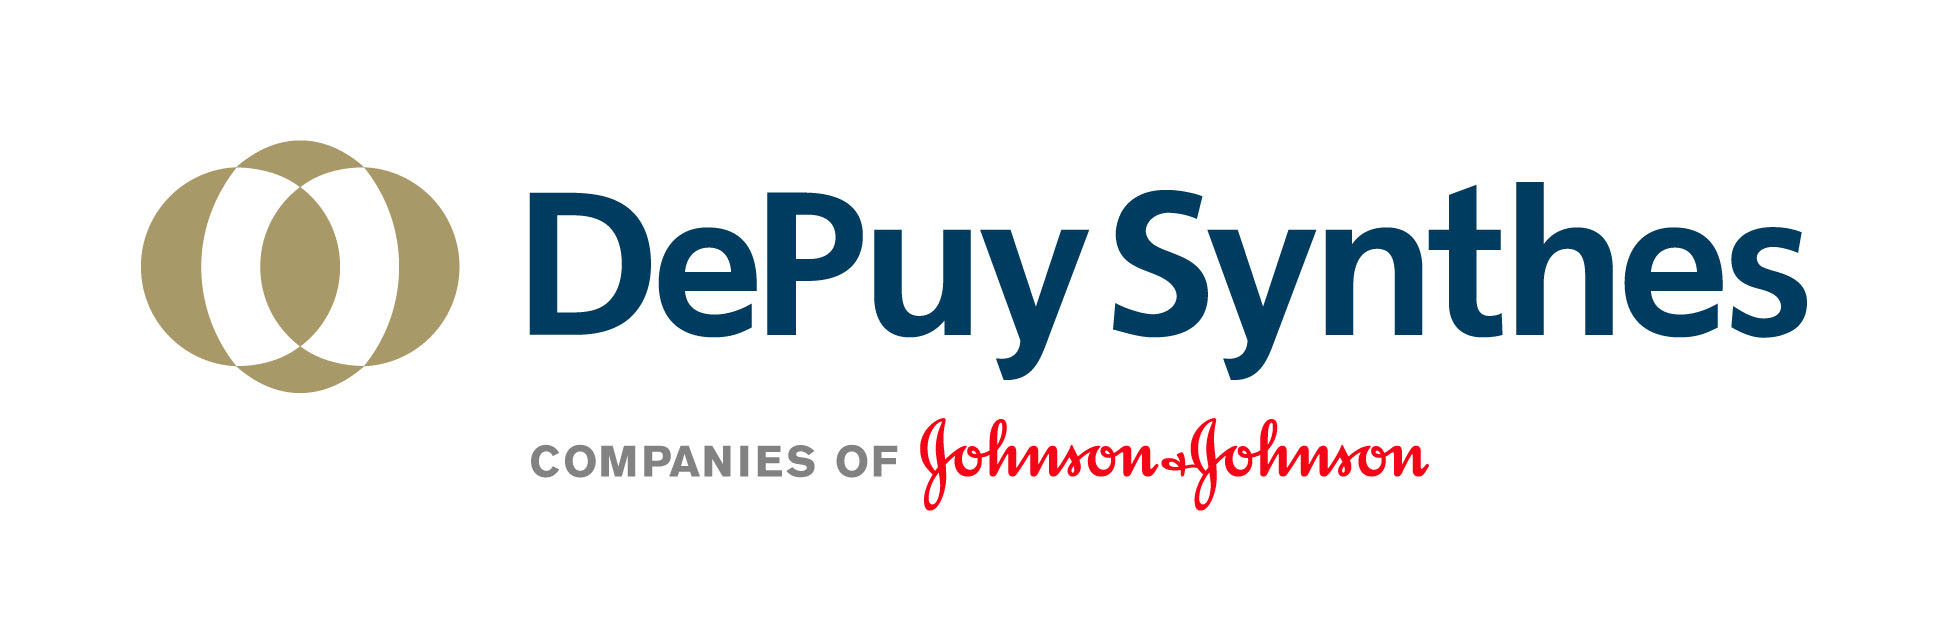 DePuySynthes Johnson & Johnson